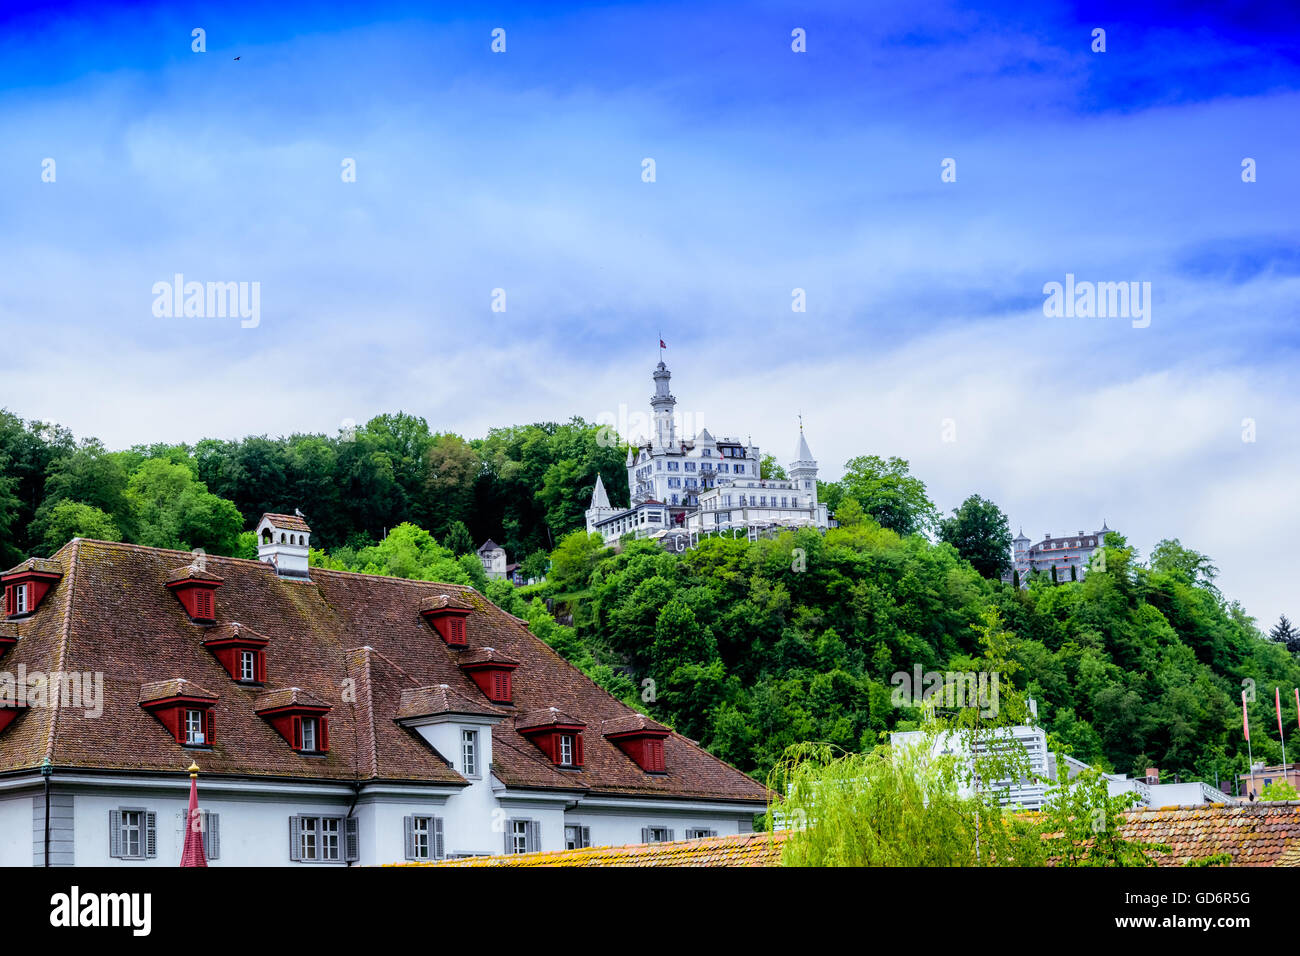 Hotel on hill in Lucerne, Switzerland - Stock Image